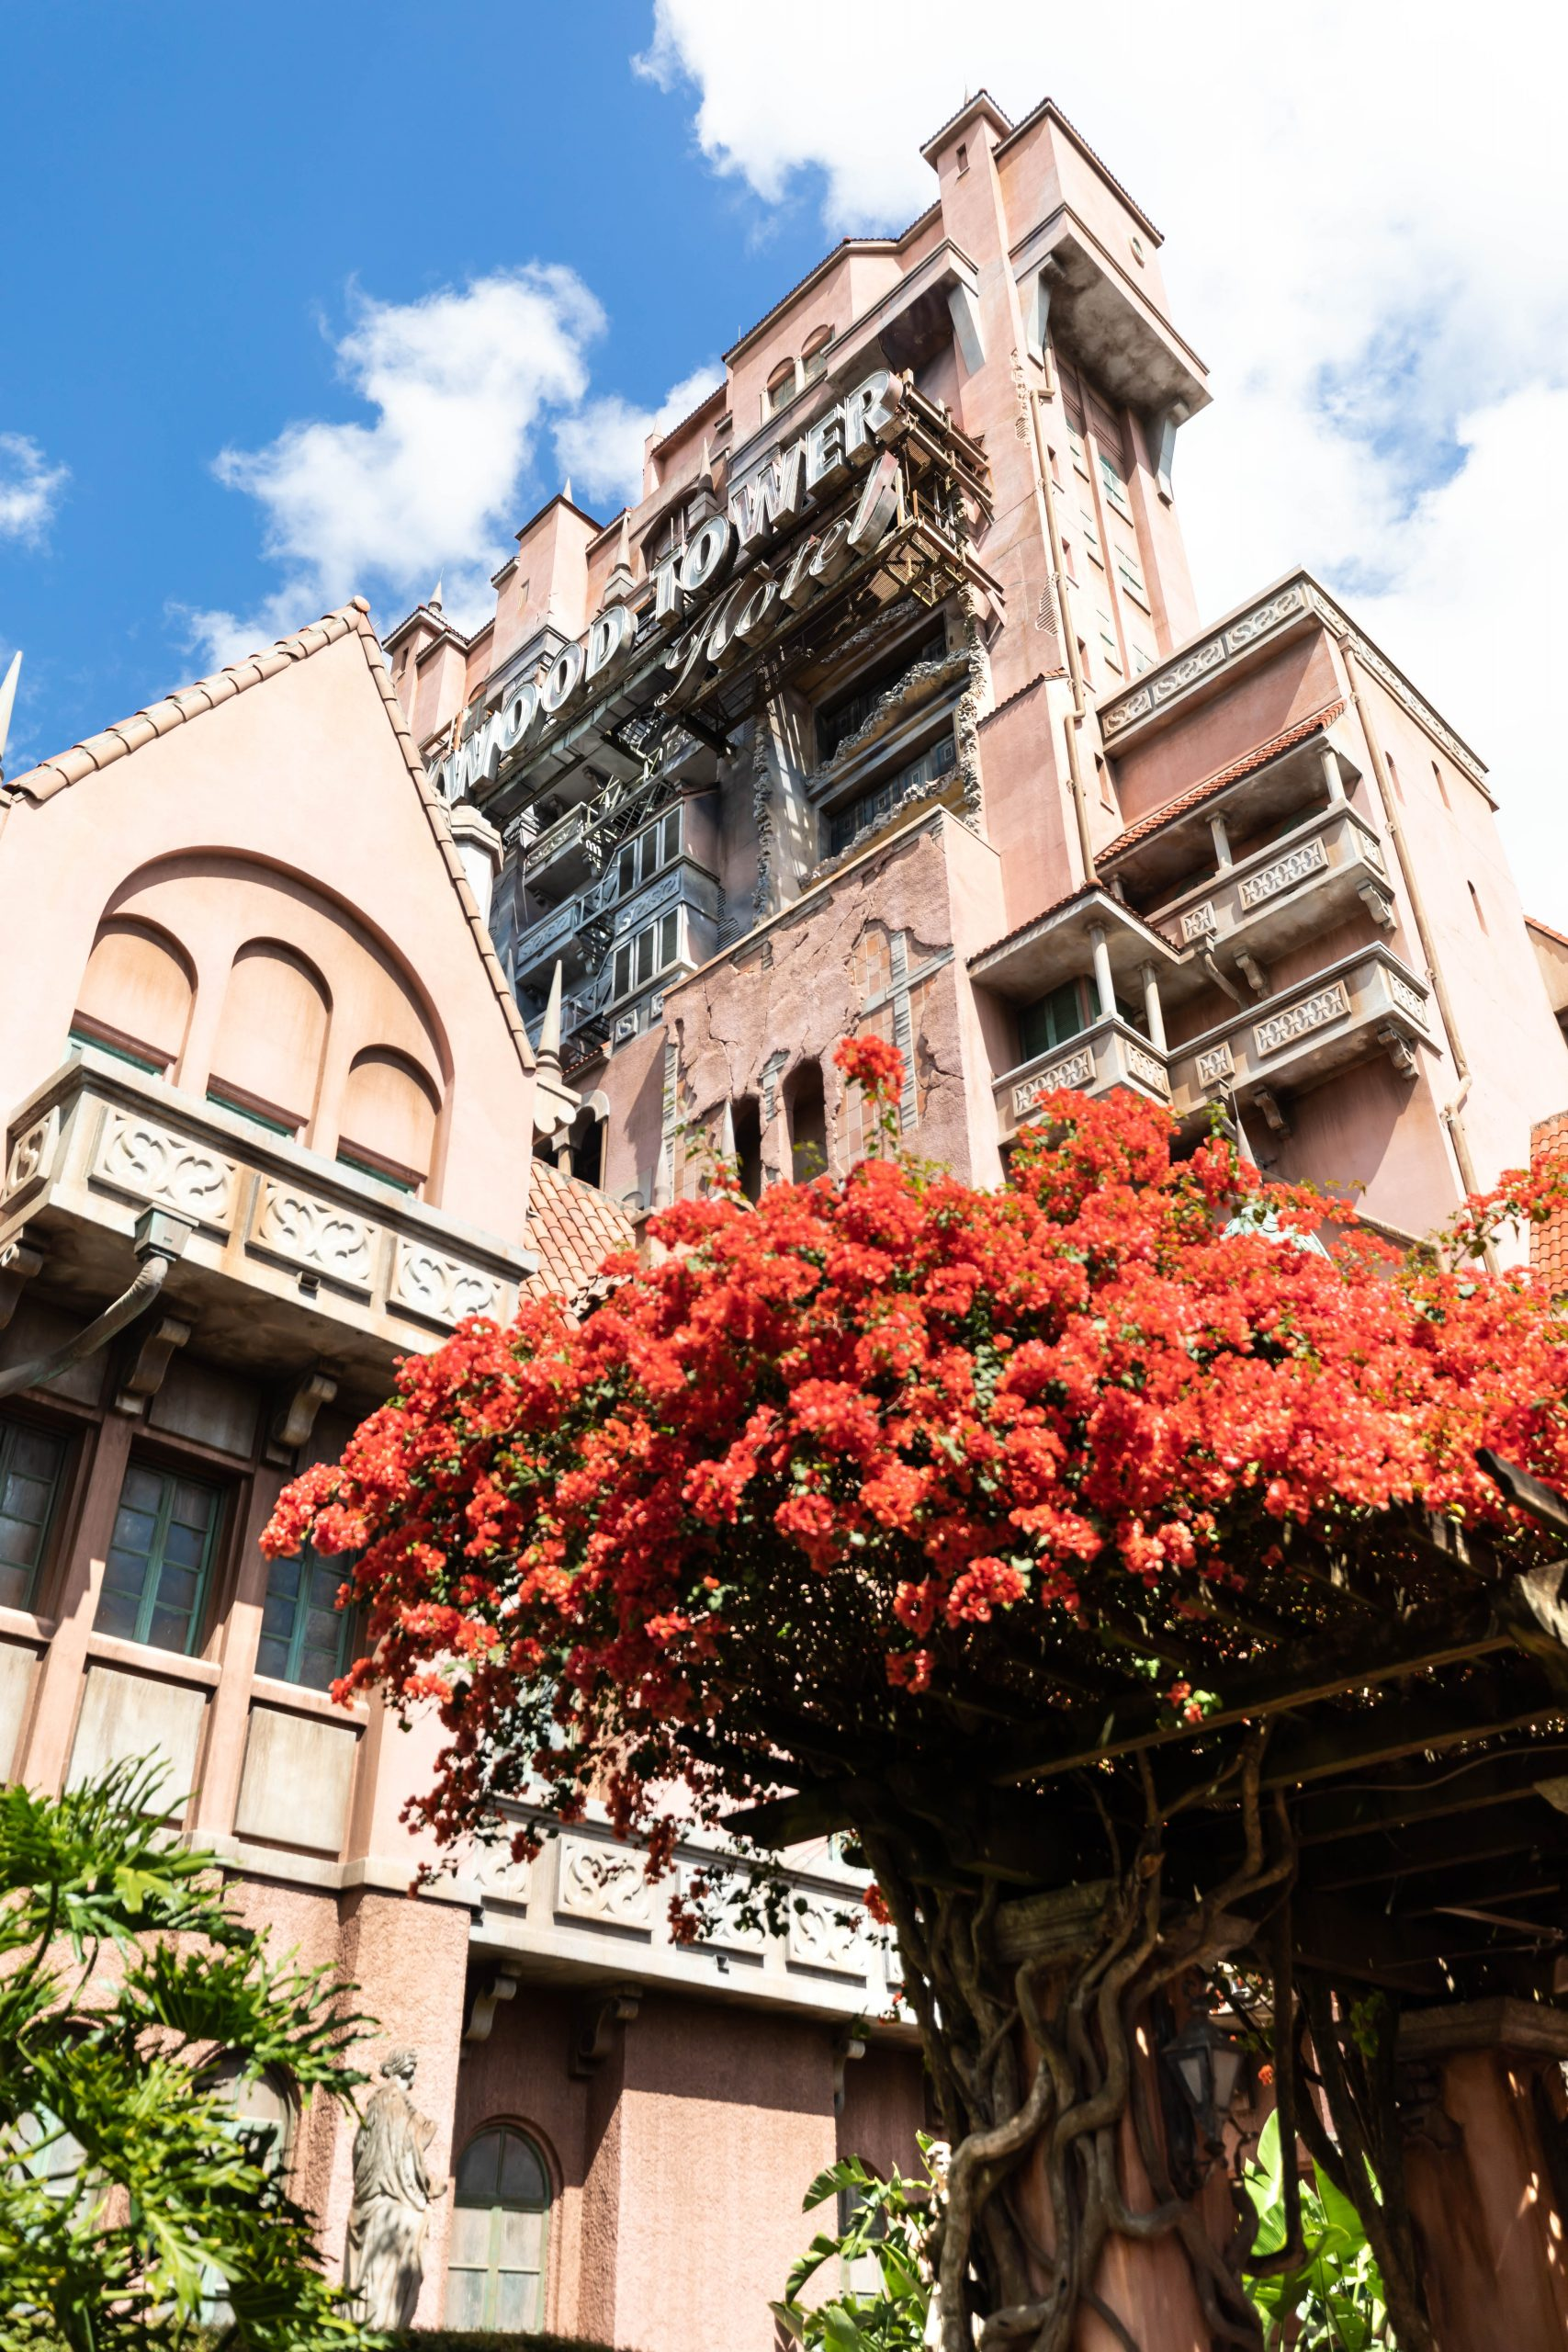 Hollywood Tower Hotel Tower of Terror in Orlando, Florida Review by Luxury Travel Writer Annie Fairfax